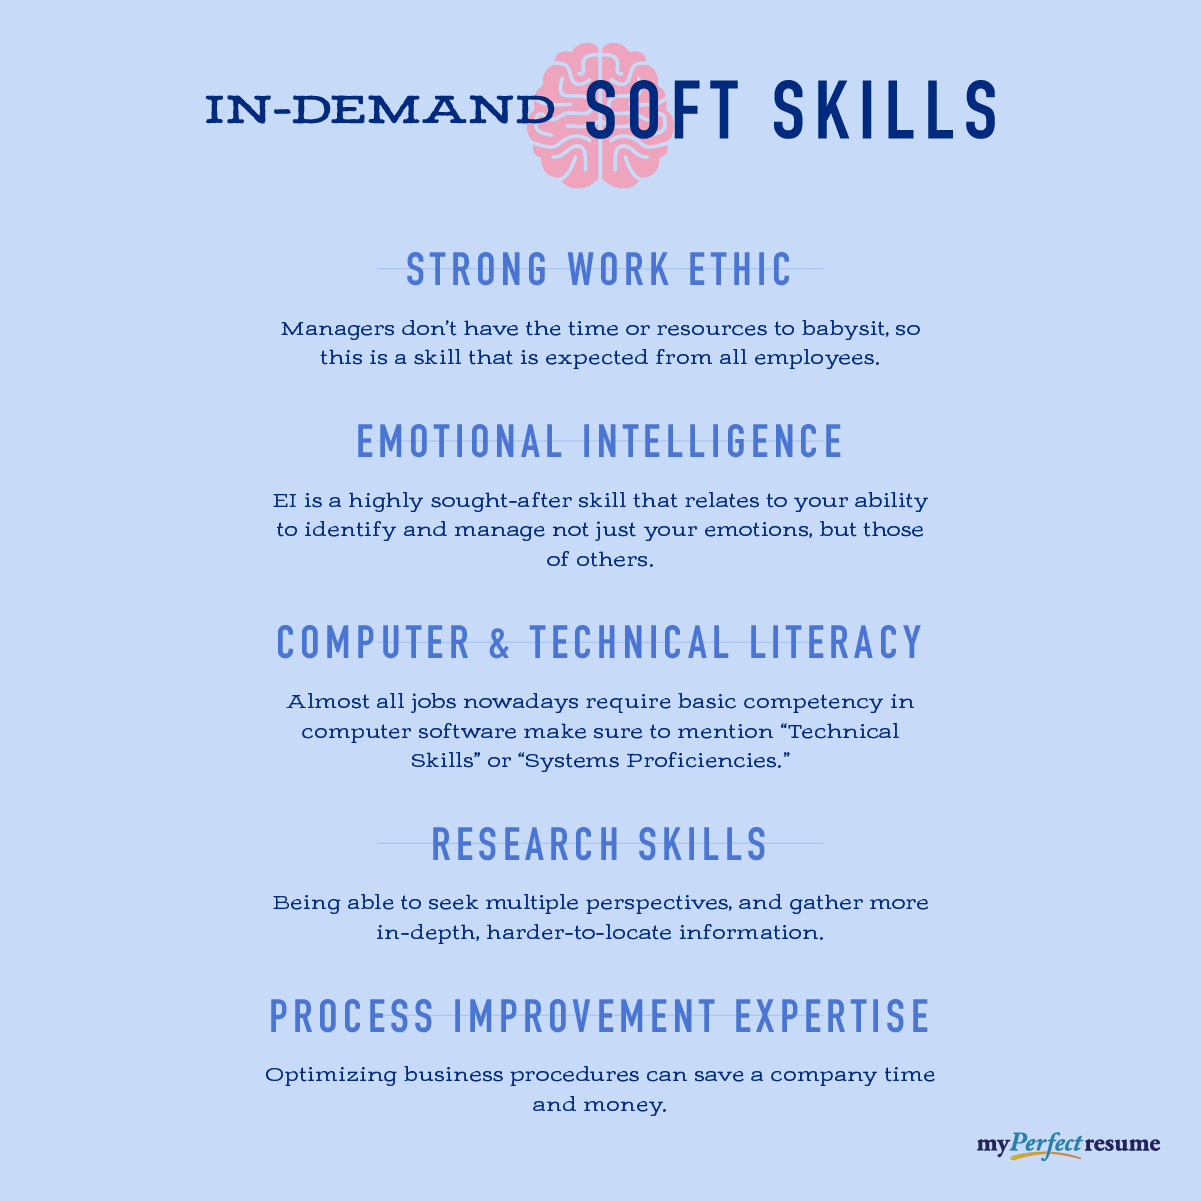 Soft Skills Are Personal Attribute Driven General Skills That Are Usually Self Developed Job Interview Advice Job Info Job Interview Preparation